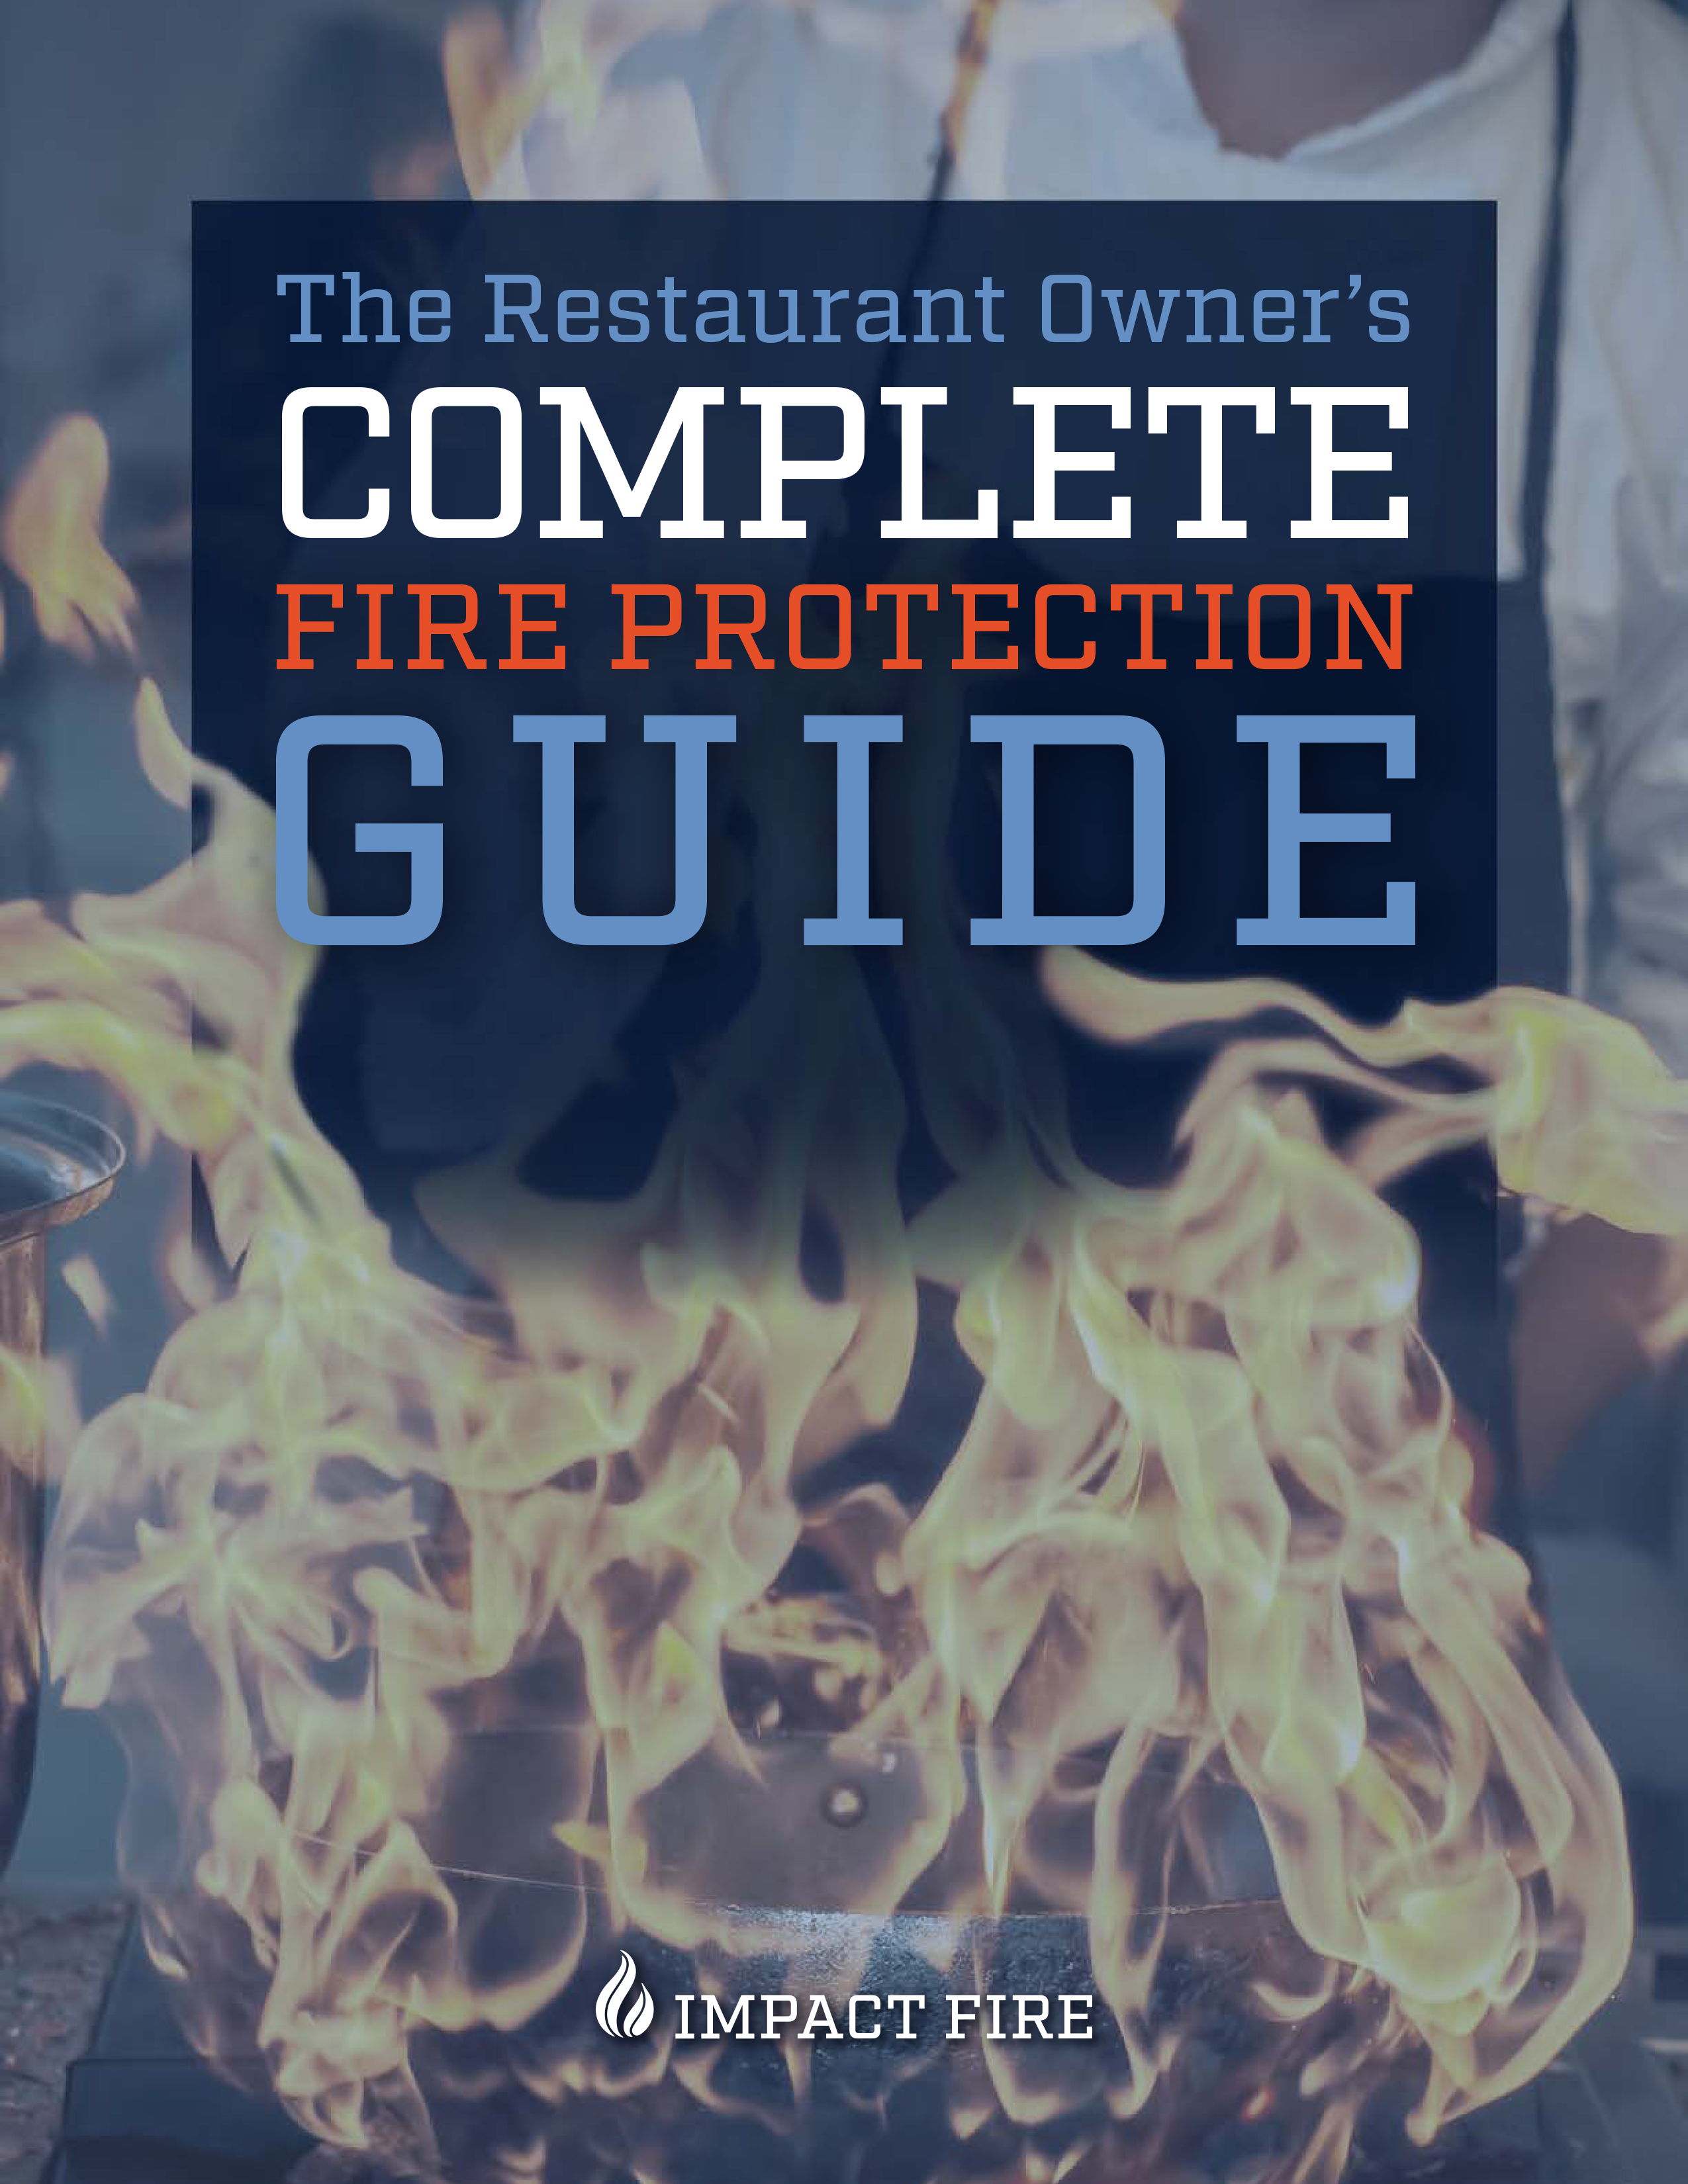 The Restaurant Owner's Complete GUIDE TO Fire Protection